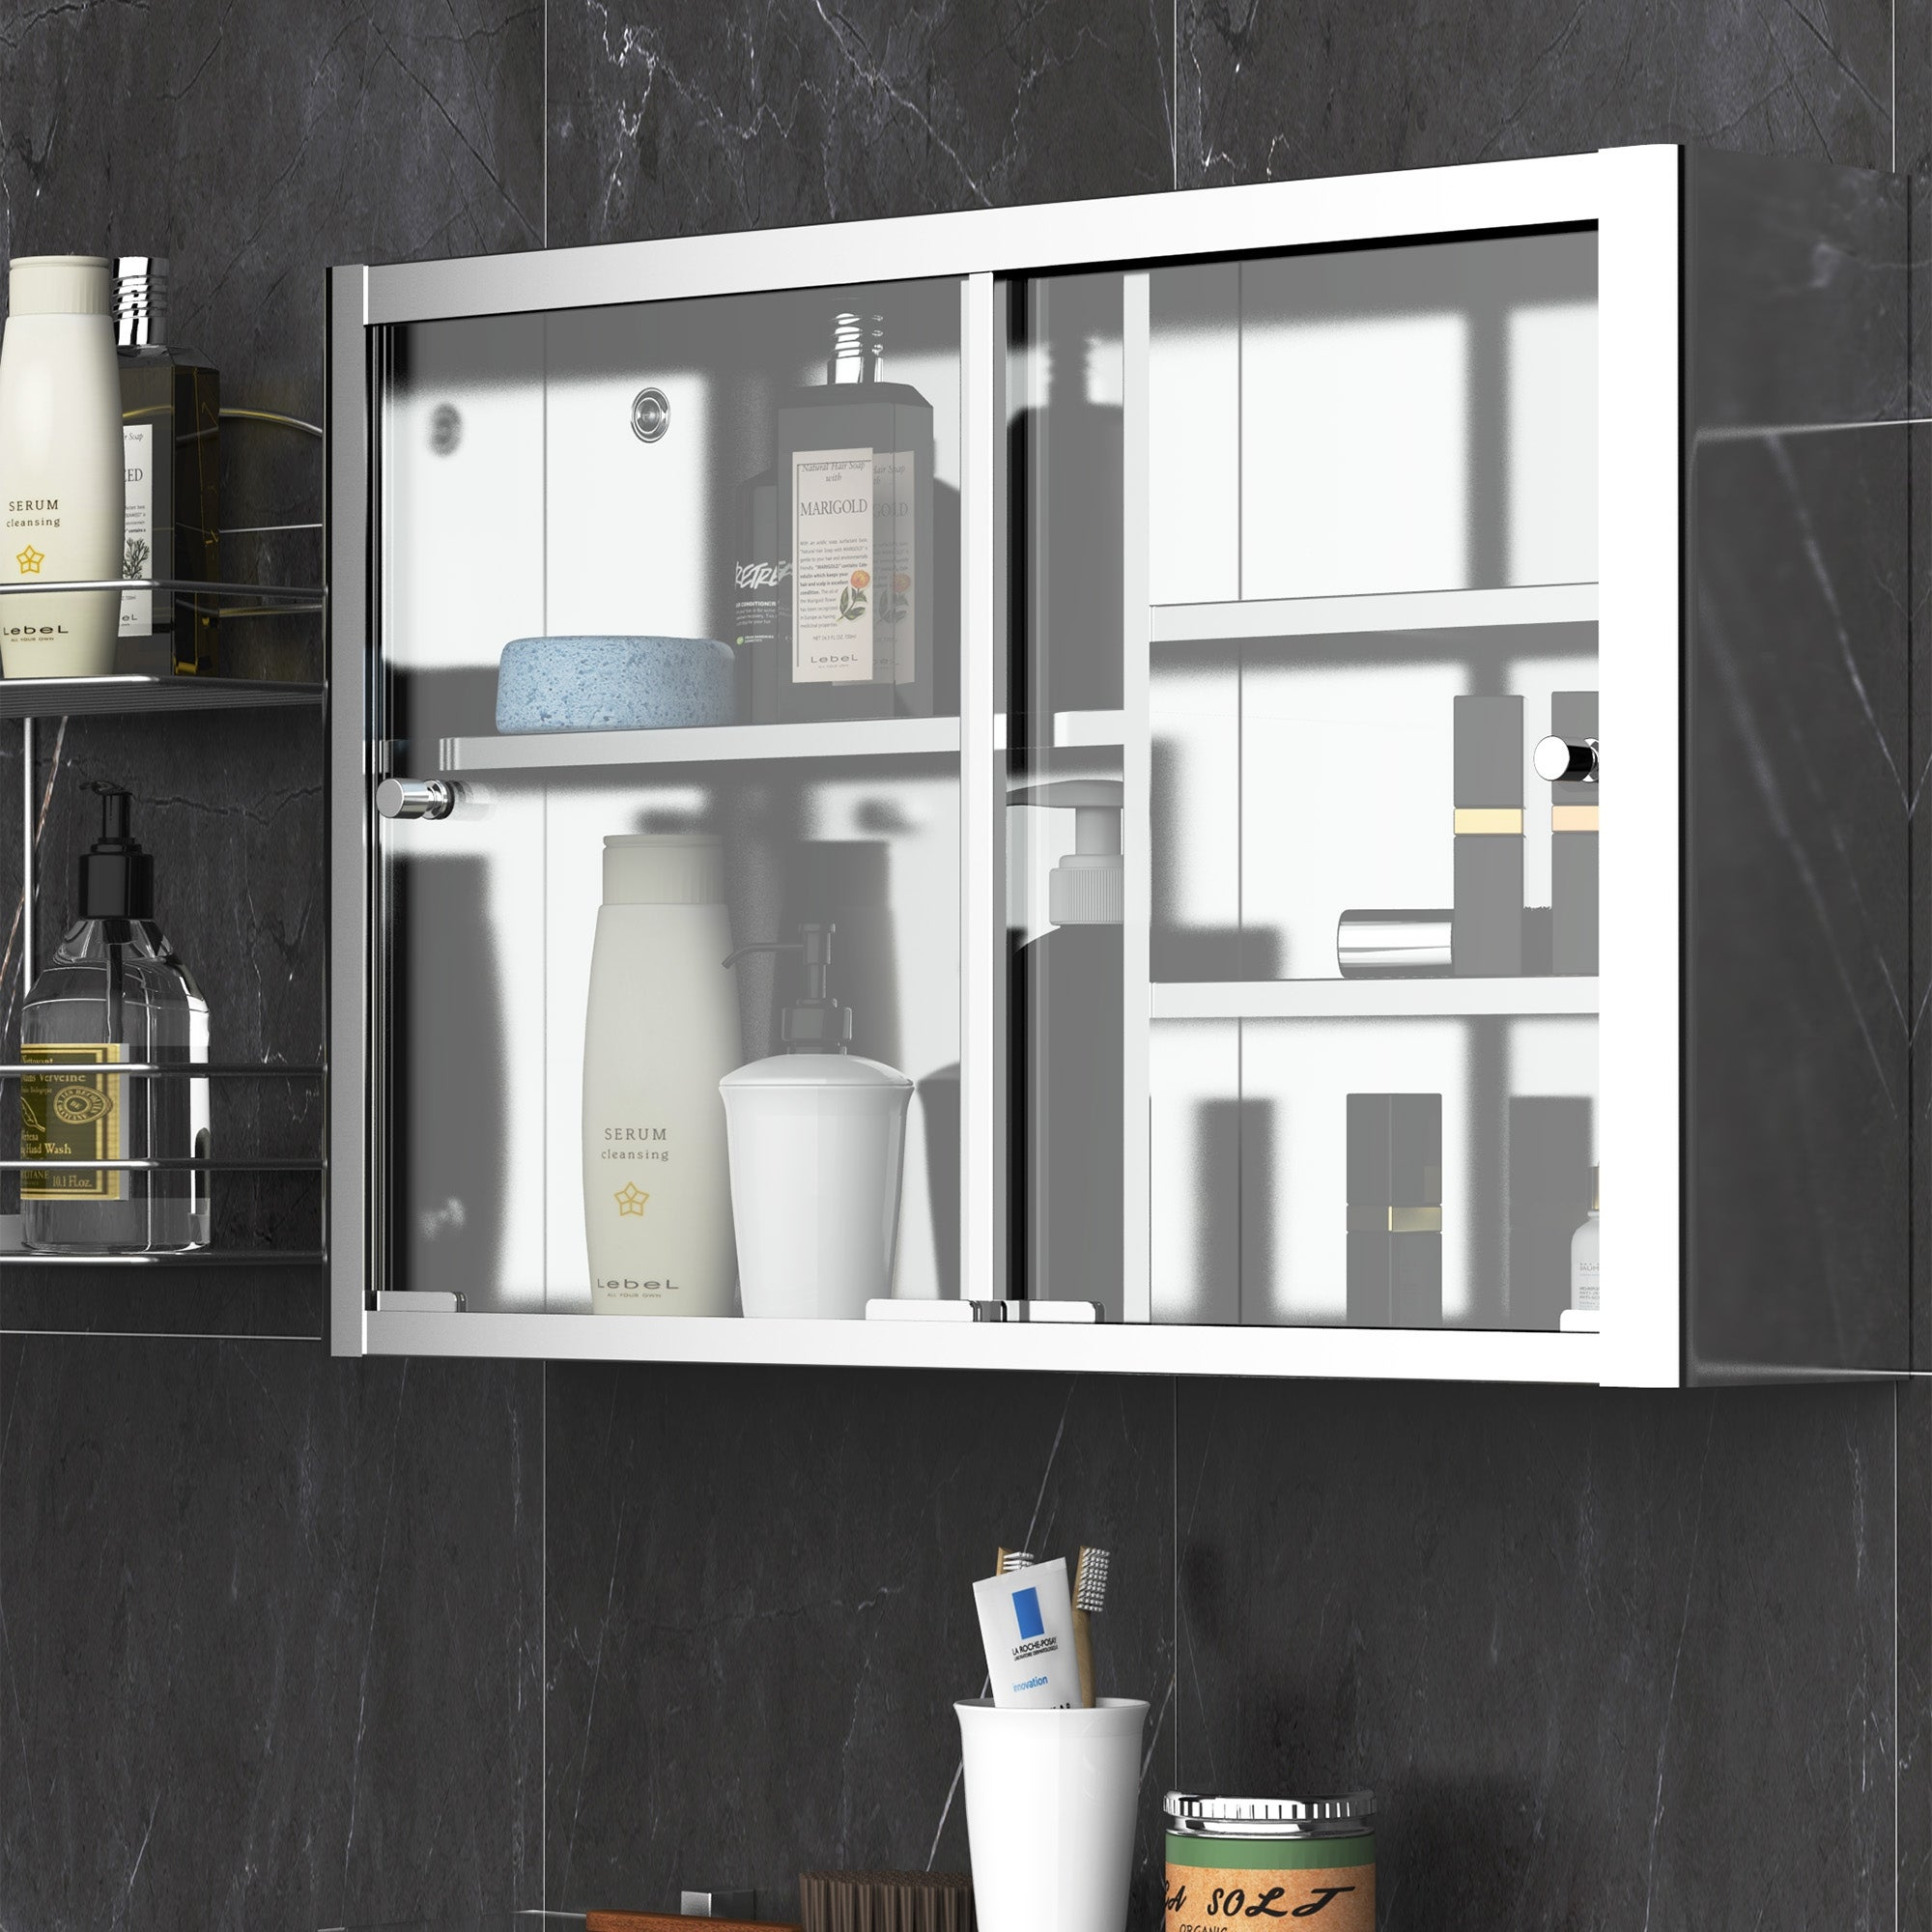 Kleankin 24 X 15 Wall Mounted Bathroom Medicine Cabinet Sliding Door With Storage Shelves Stainless Steel Silver On Sale Overstock 32267761